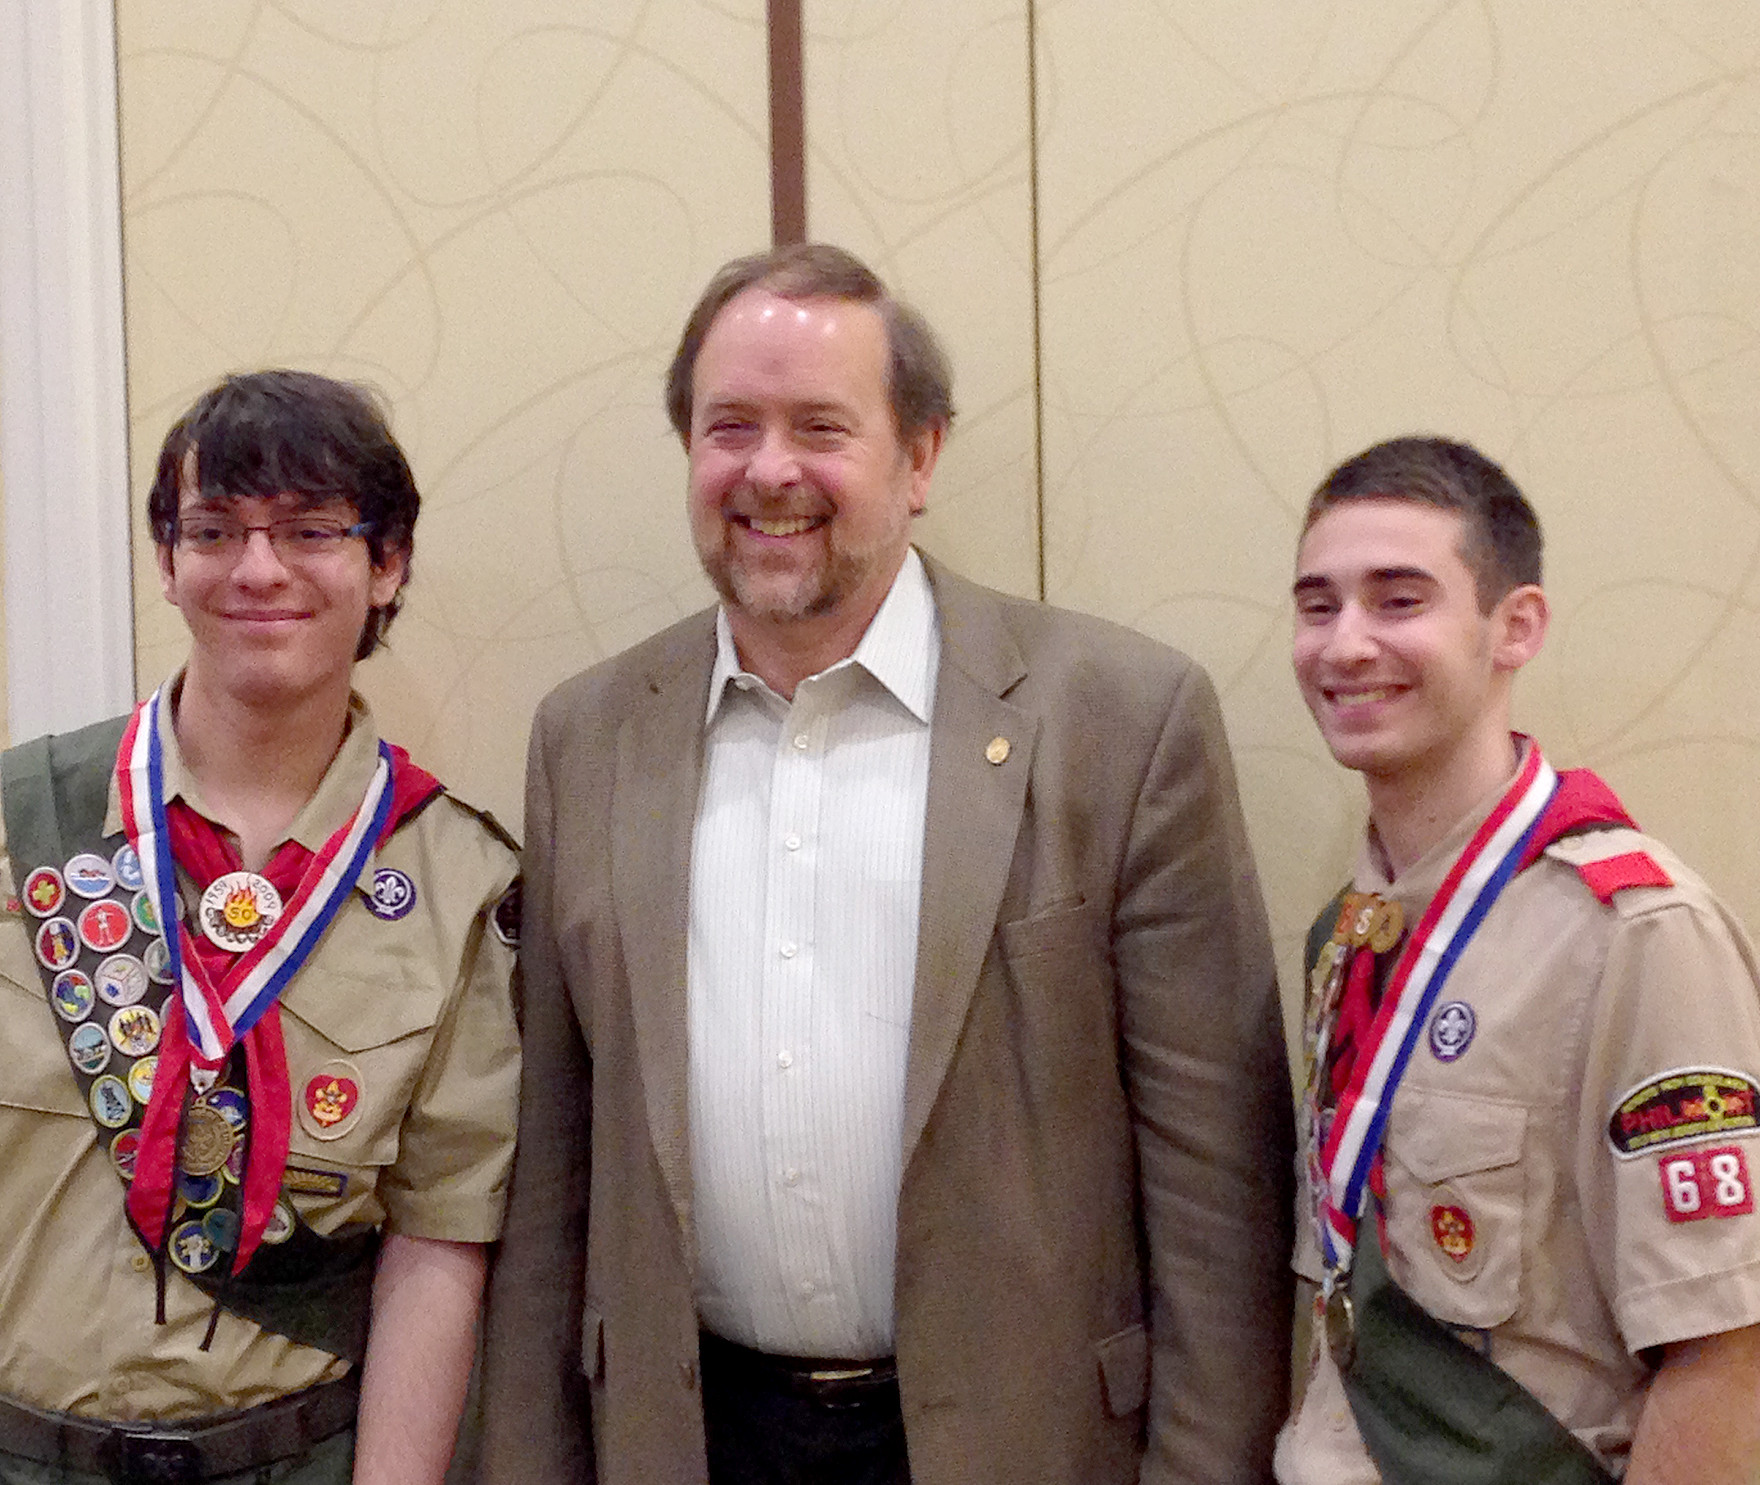 (above l-r) flanking Troop 68 Scoutmaster Cliff Boldt) Colin Hegarty and Nick Young received BSA Scholar Athlete Awards at a recognition breakfast on December 20. The award is given by Patriots Path Council of BSA to over 50 Scouts from central New Jersey troops who have excelled in the classroom and on the athletic field while also being successful Boy Scouts.